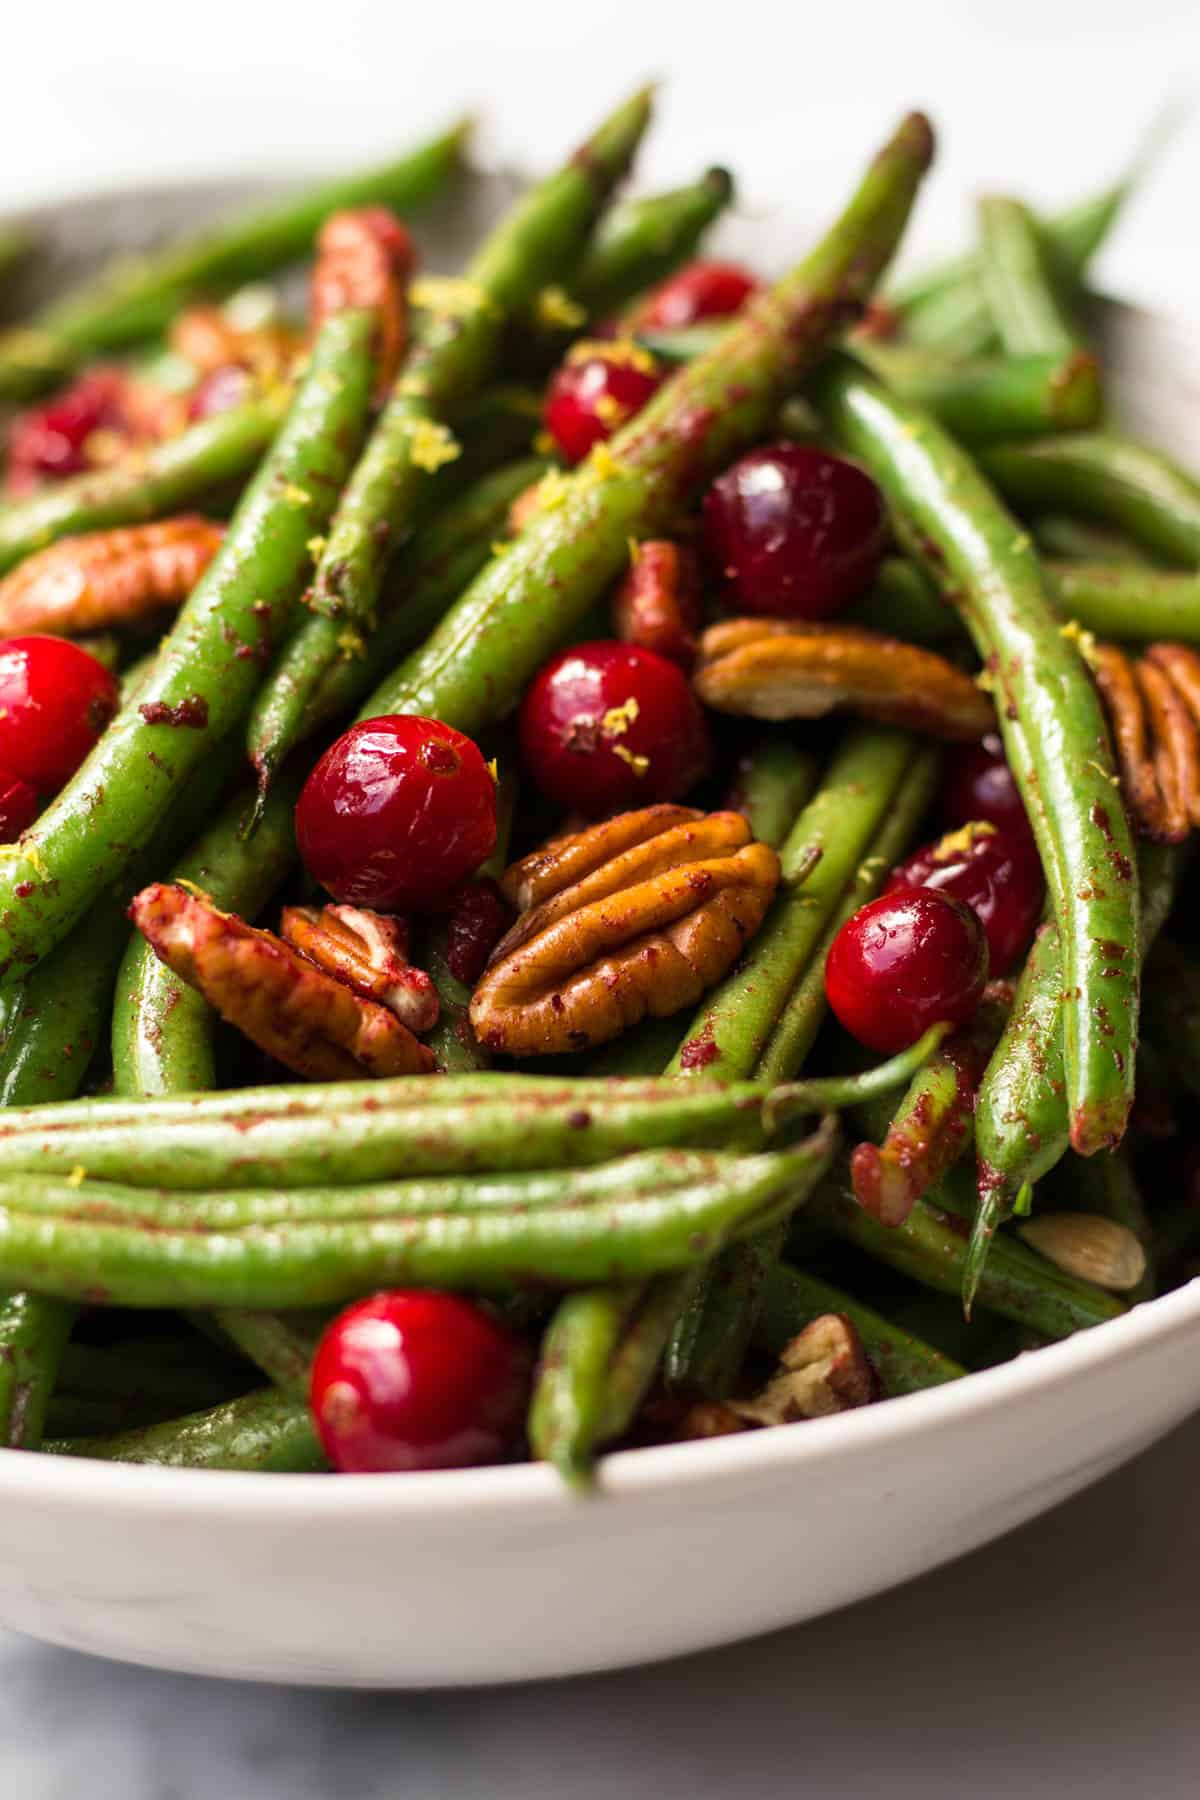 These super easy Paleo Holiday Green Beans come together in less than 10 minutes and make the perfect side to your main course - paleo, vegan, and Whole30 approved too! - Eat the Gains